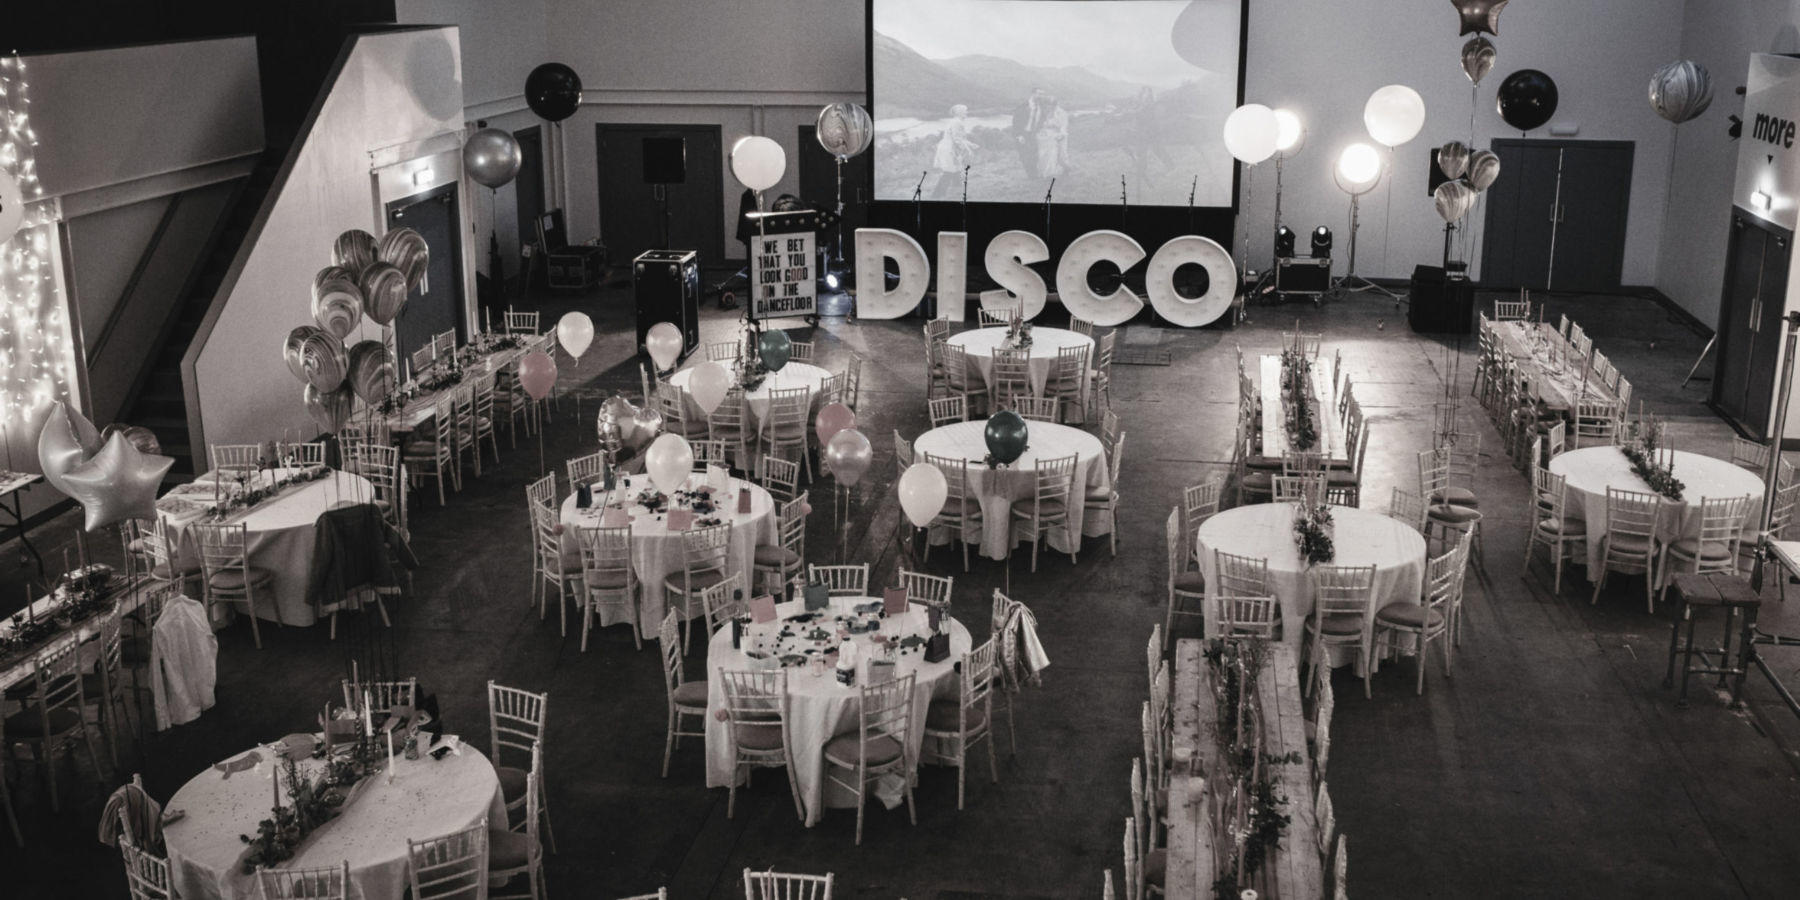 wedding reception venue in Liverpool